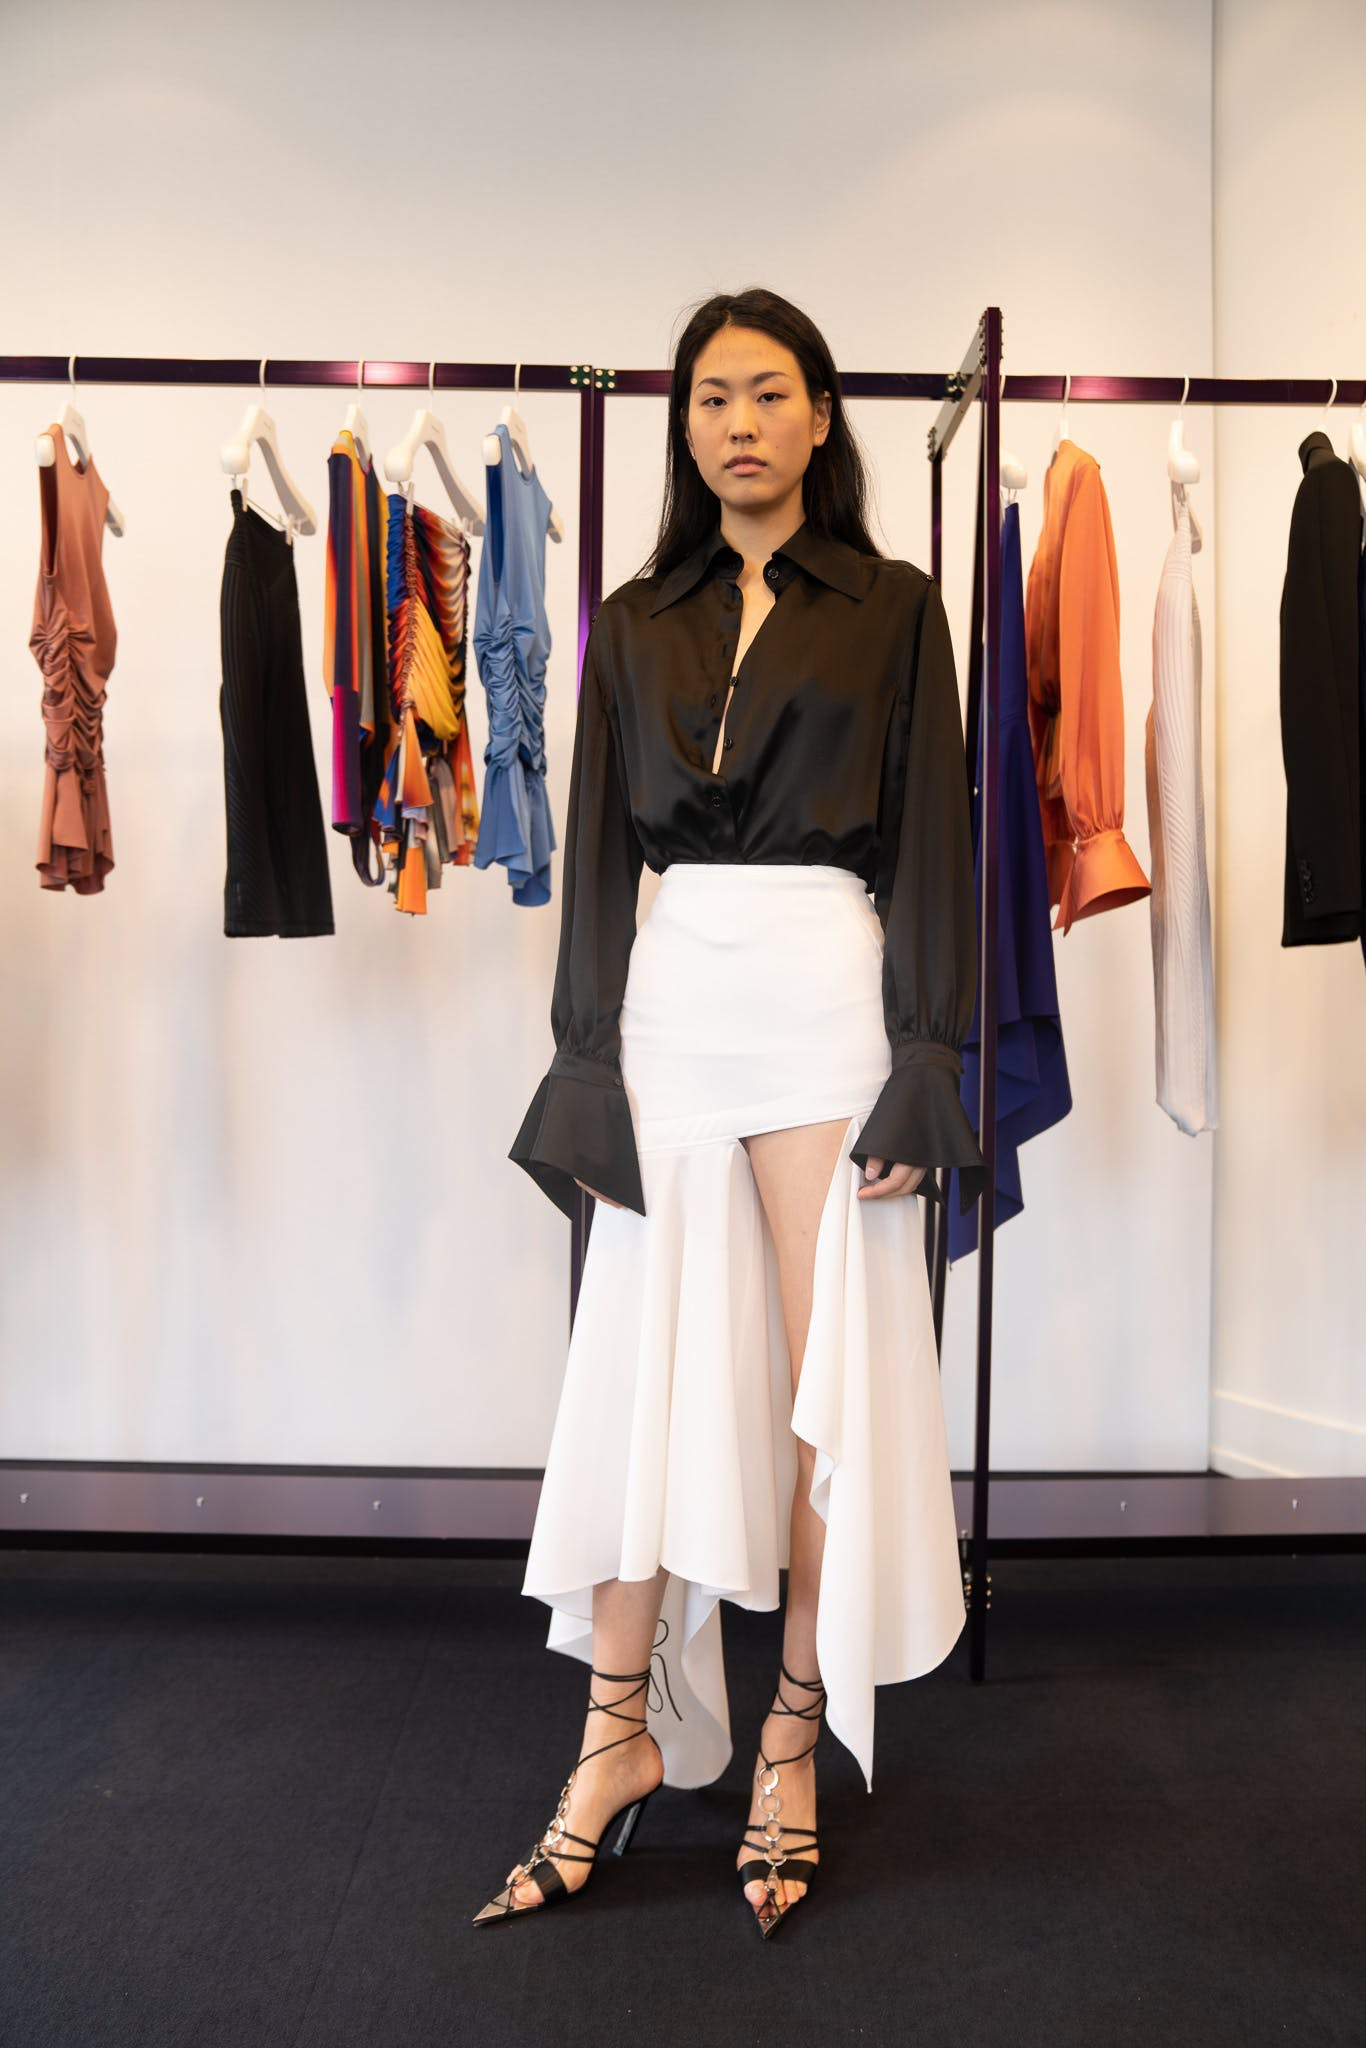 Mugler Showroom Long Sleeve Button Up Collar Shirt Mixed Length Skirt in White Spring 20 RTW